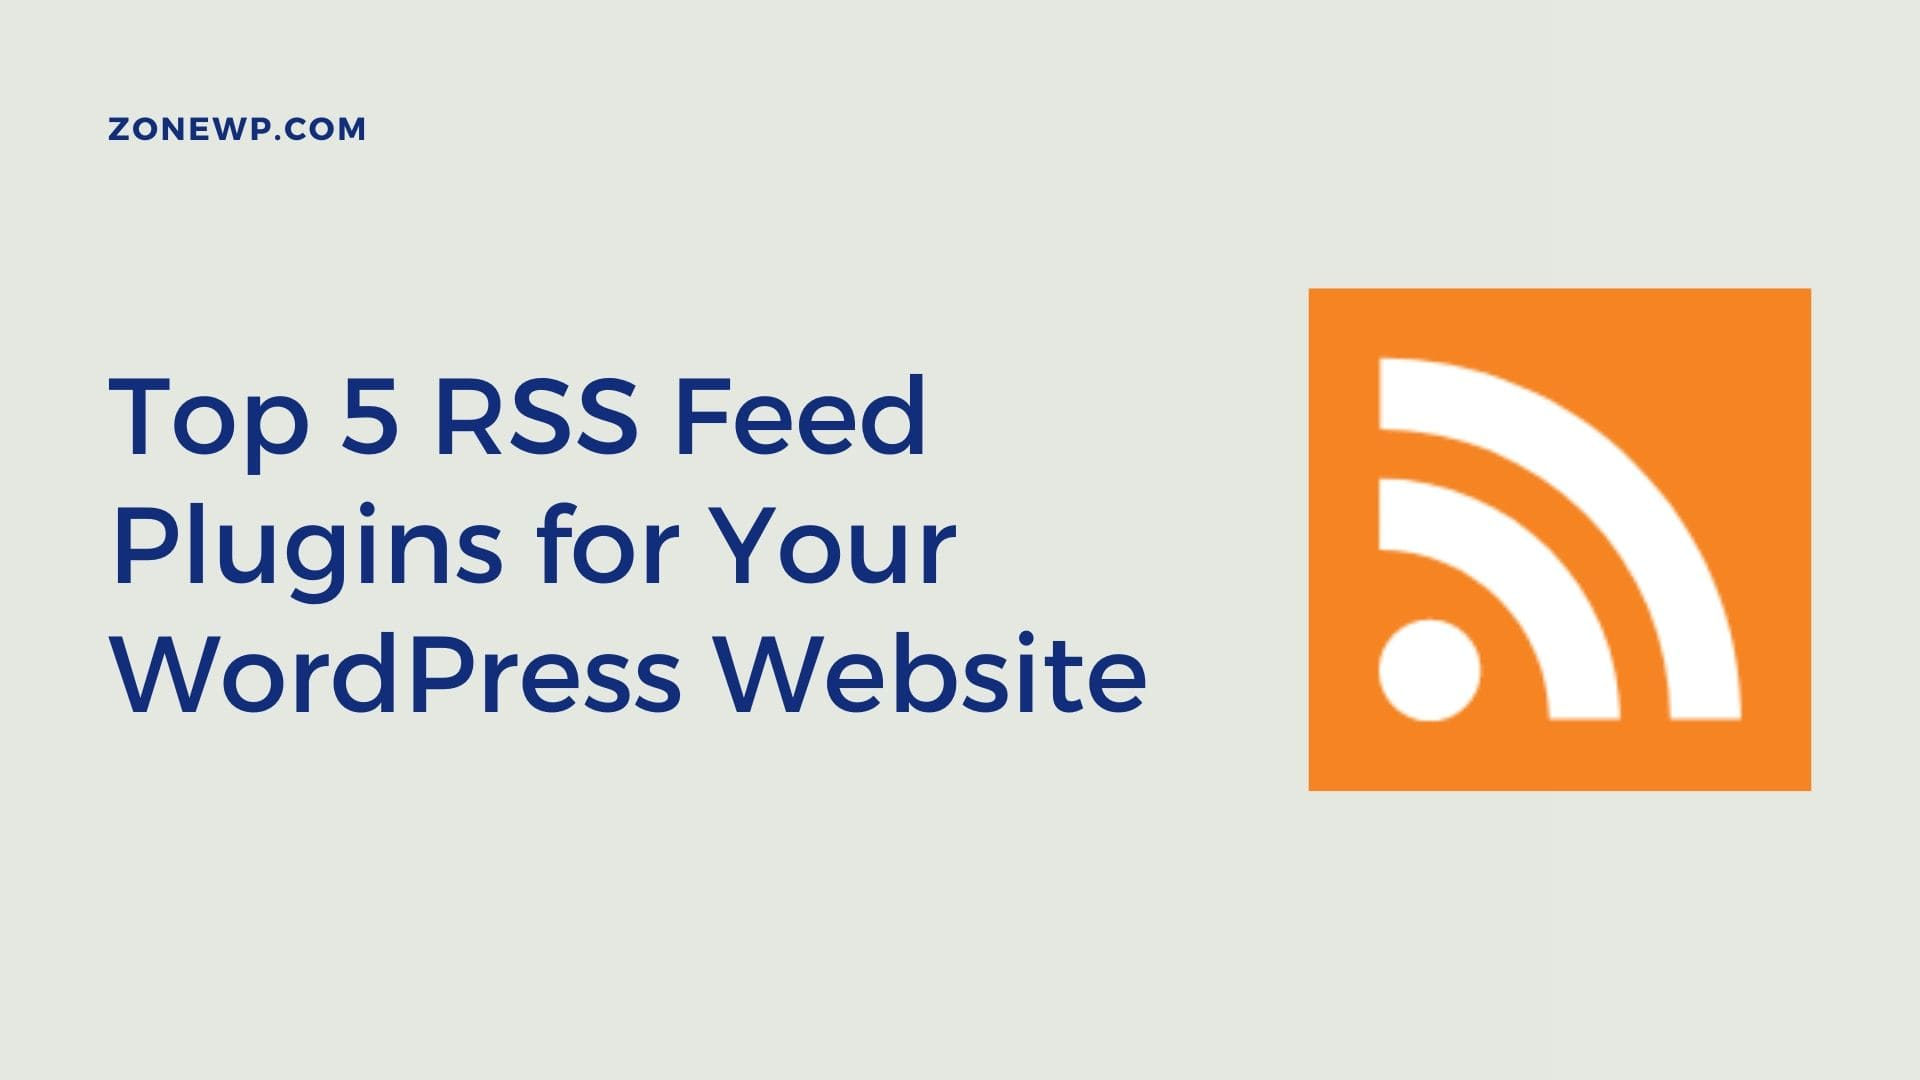 Top 5 RSS Feed Plugins for Your WordPress Website